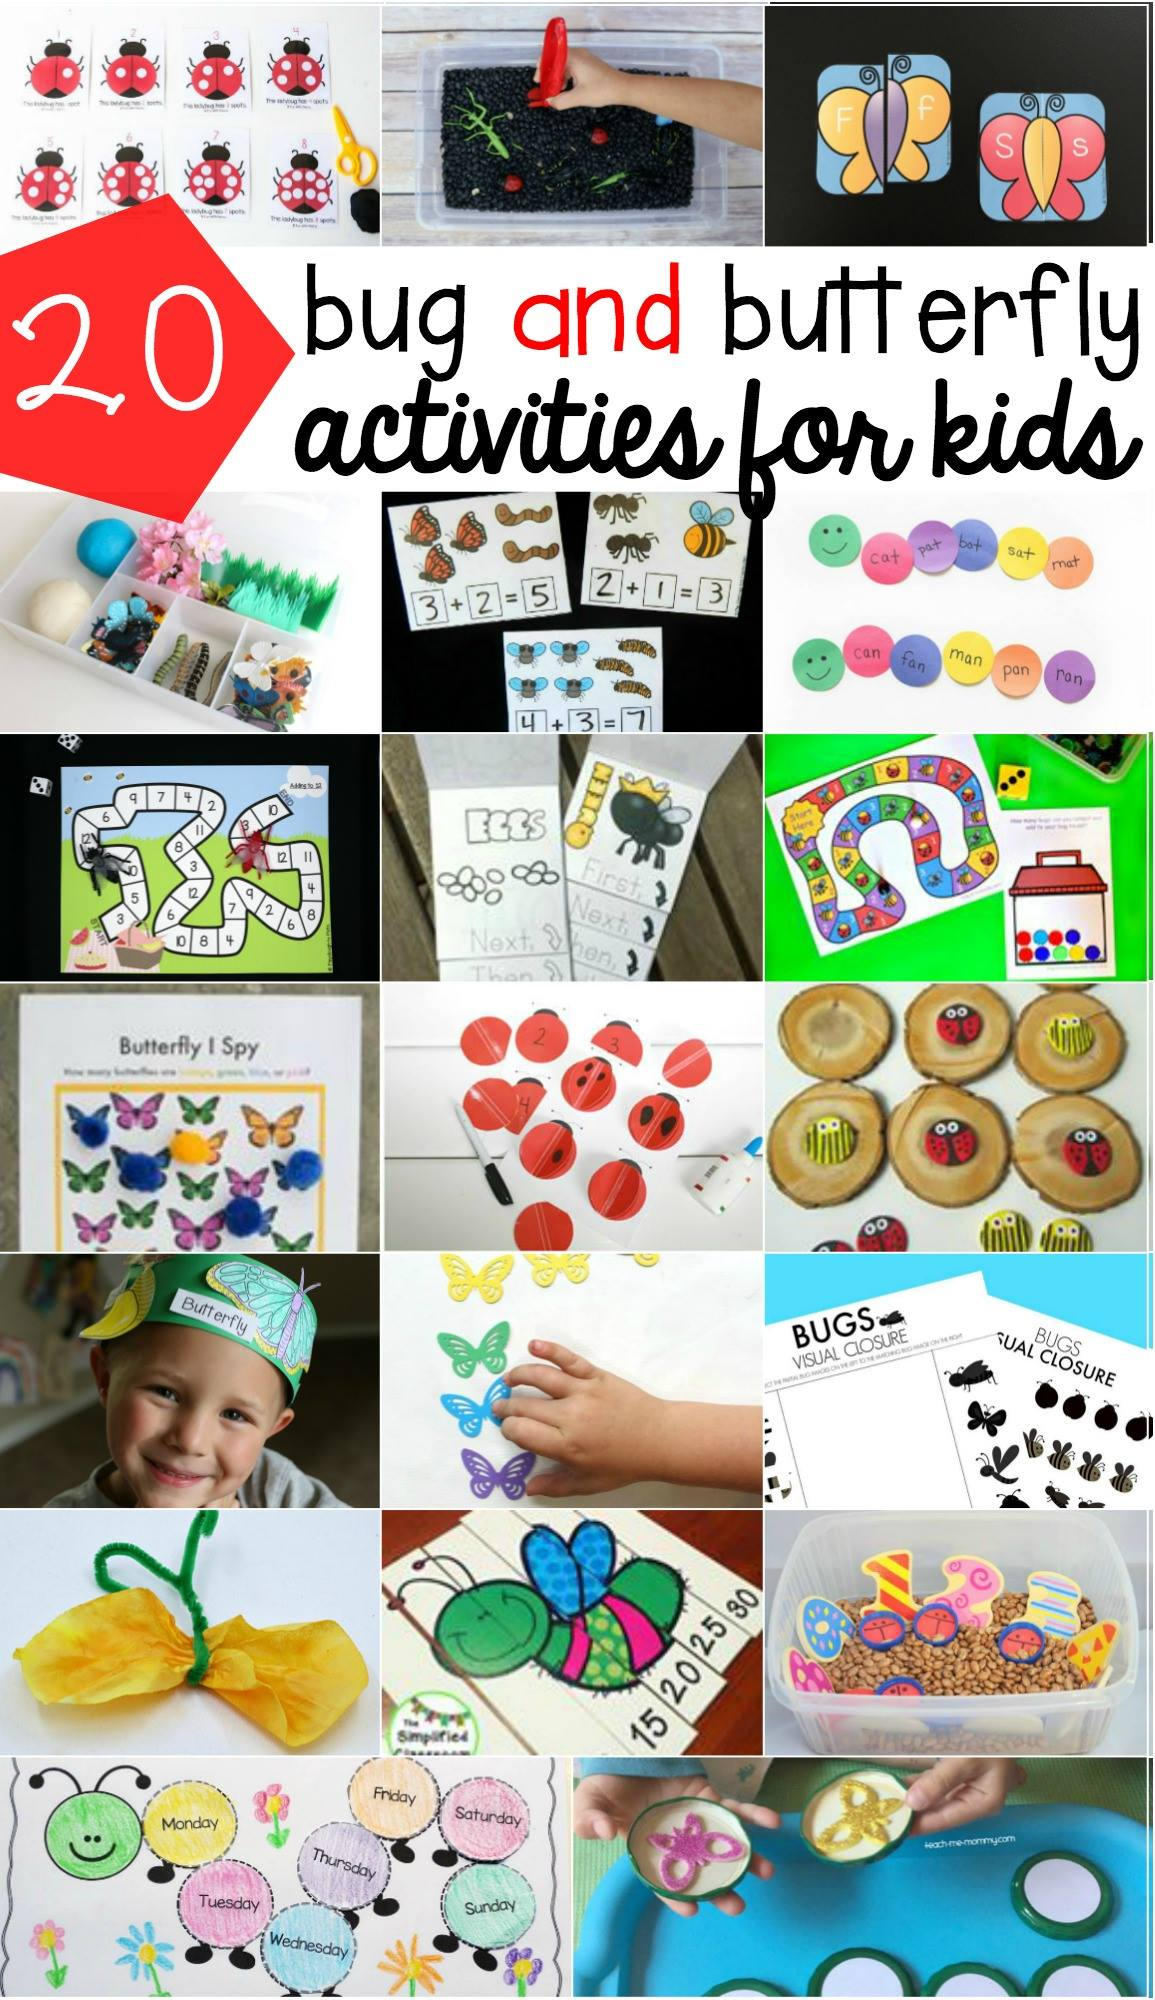 20 bug and butterfly activities for kids